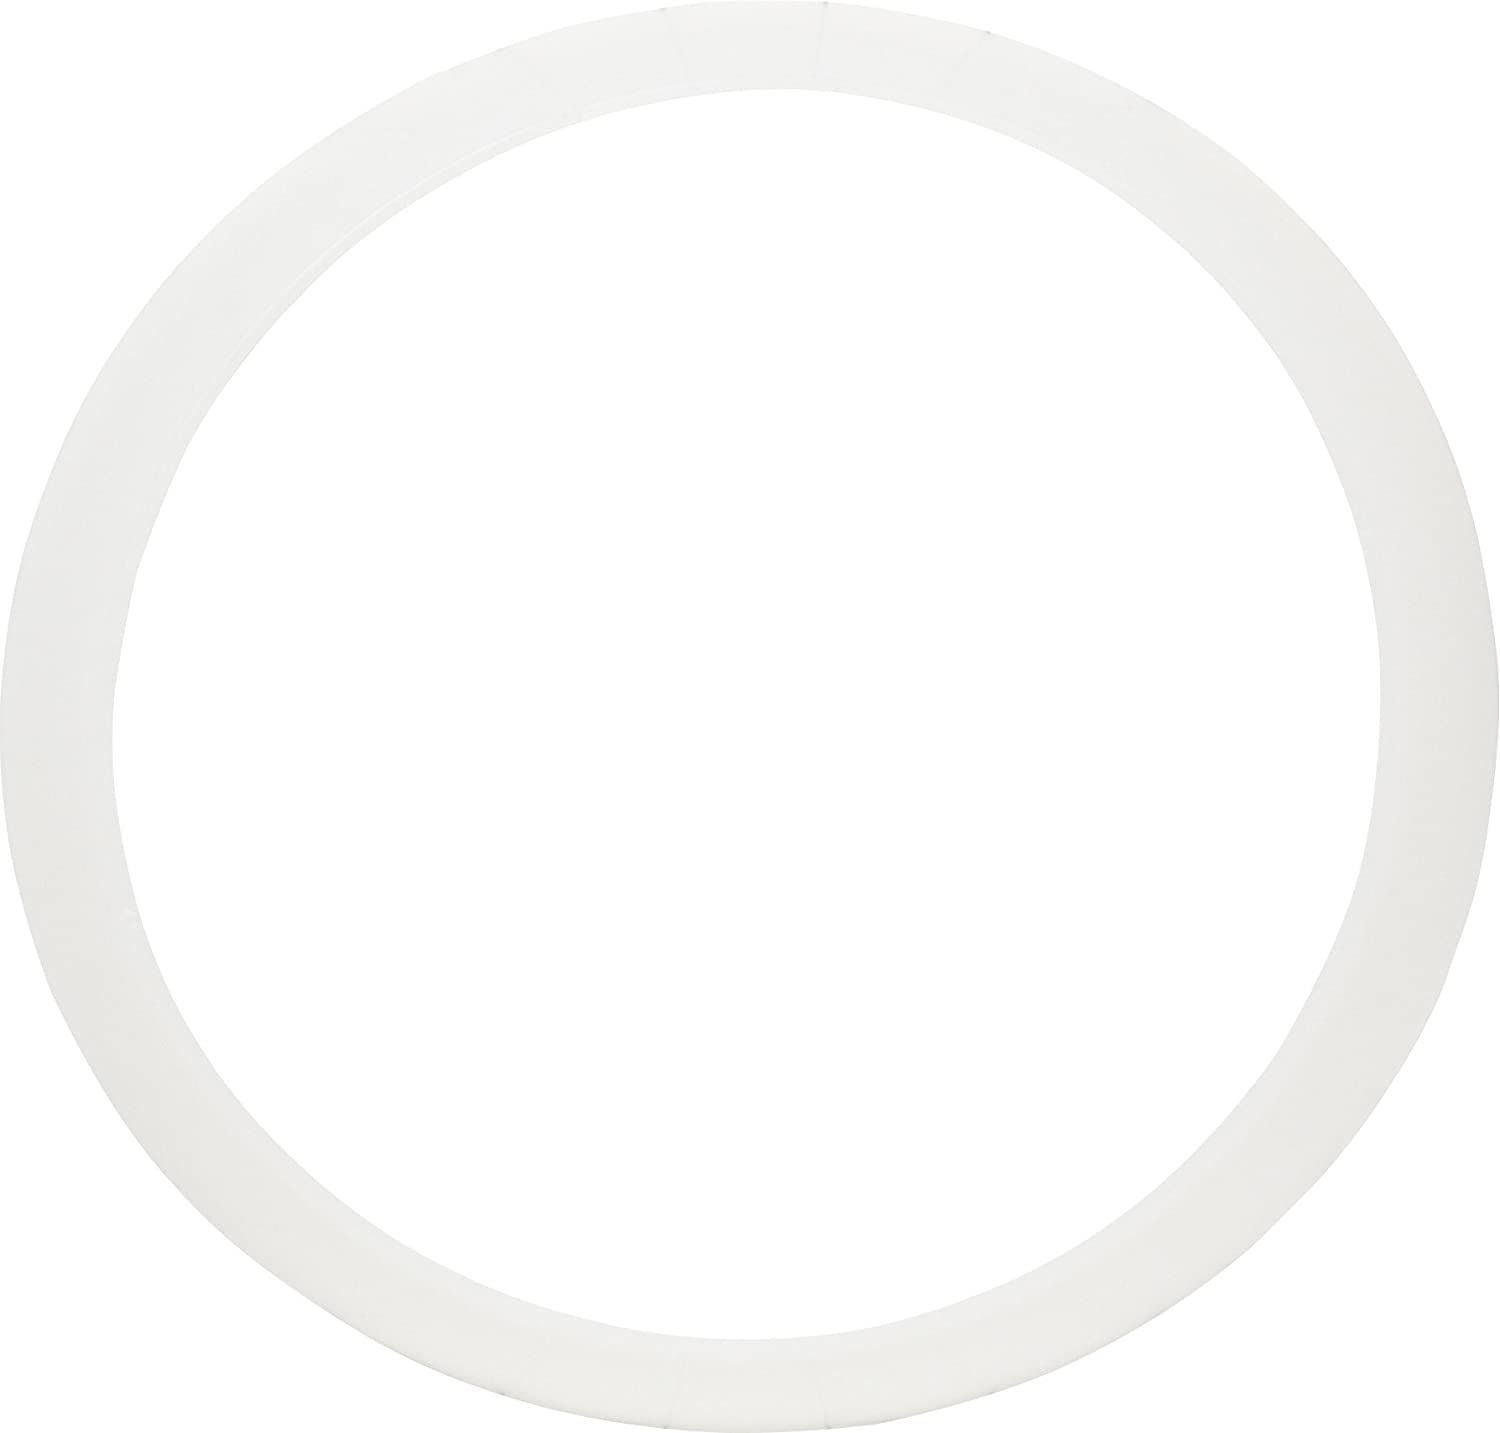 Whirlpool 21002026 Snubber, 1.5 x 2.5 x 3.5 Inch, White